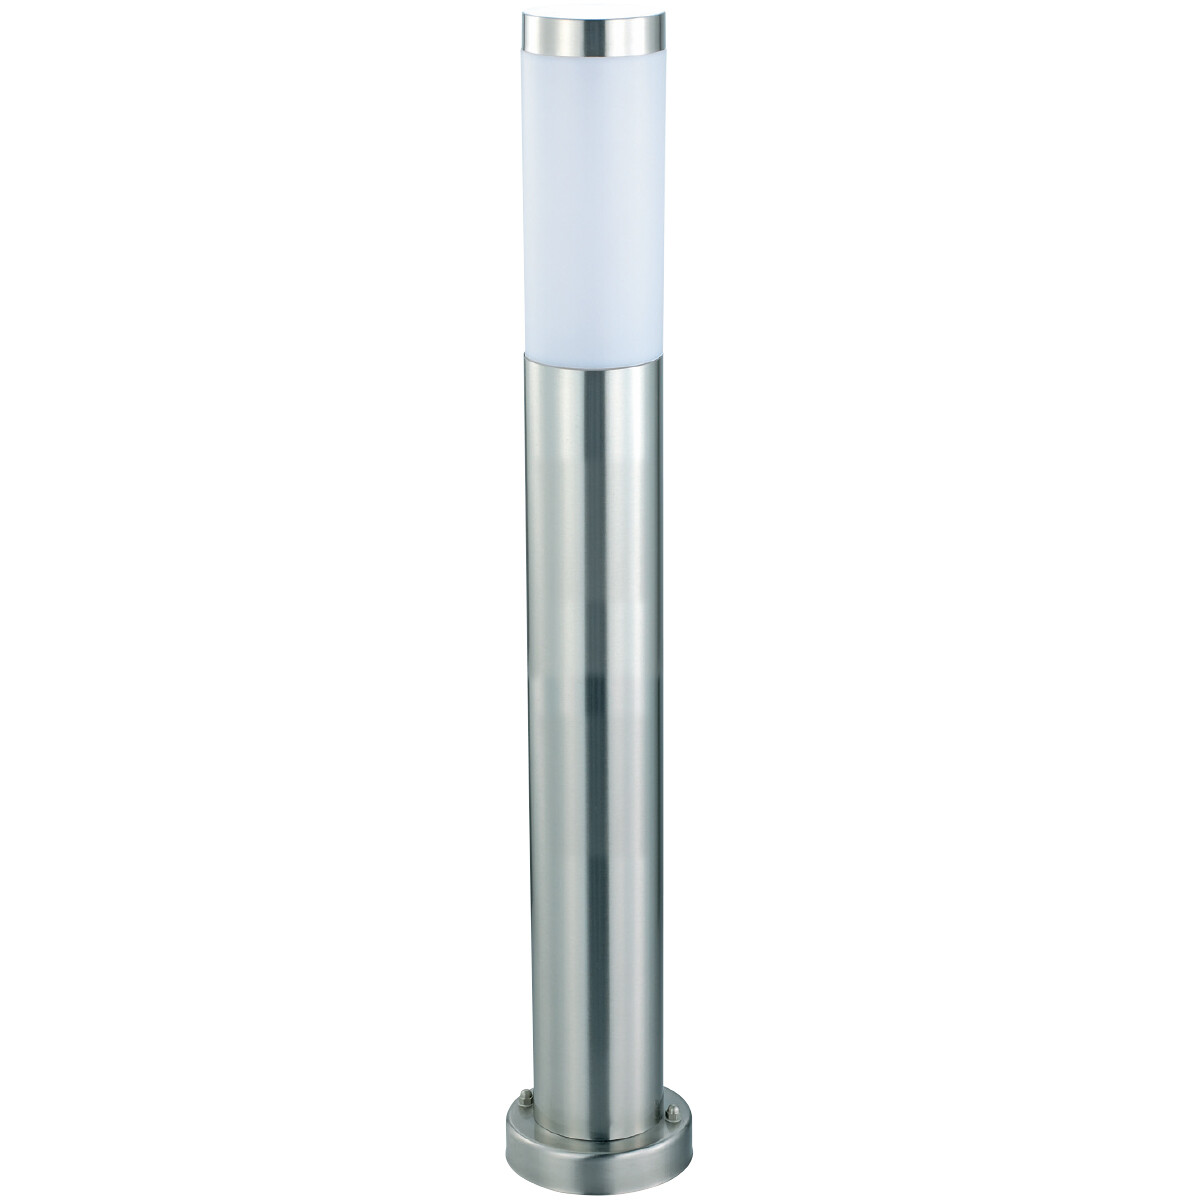 PHILIPS - LED Tuinverlichting - Staande Buitenlamp - SceneSwitch 827 A60 - Laurea 5 - E27 Fitting -